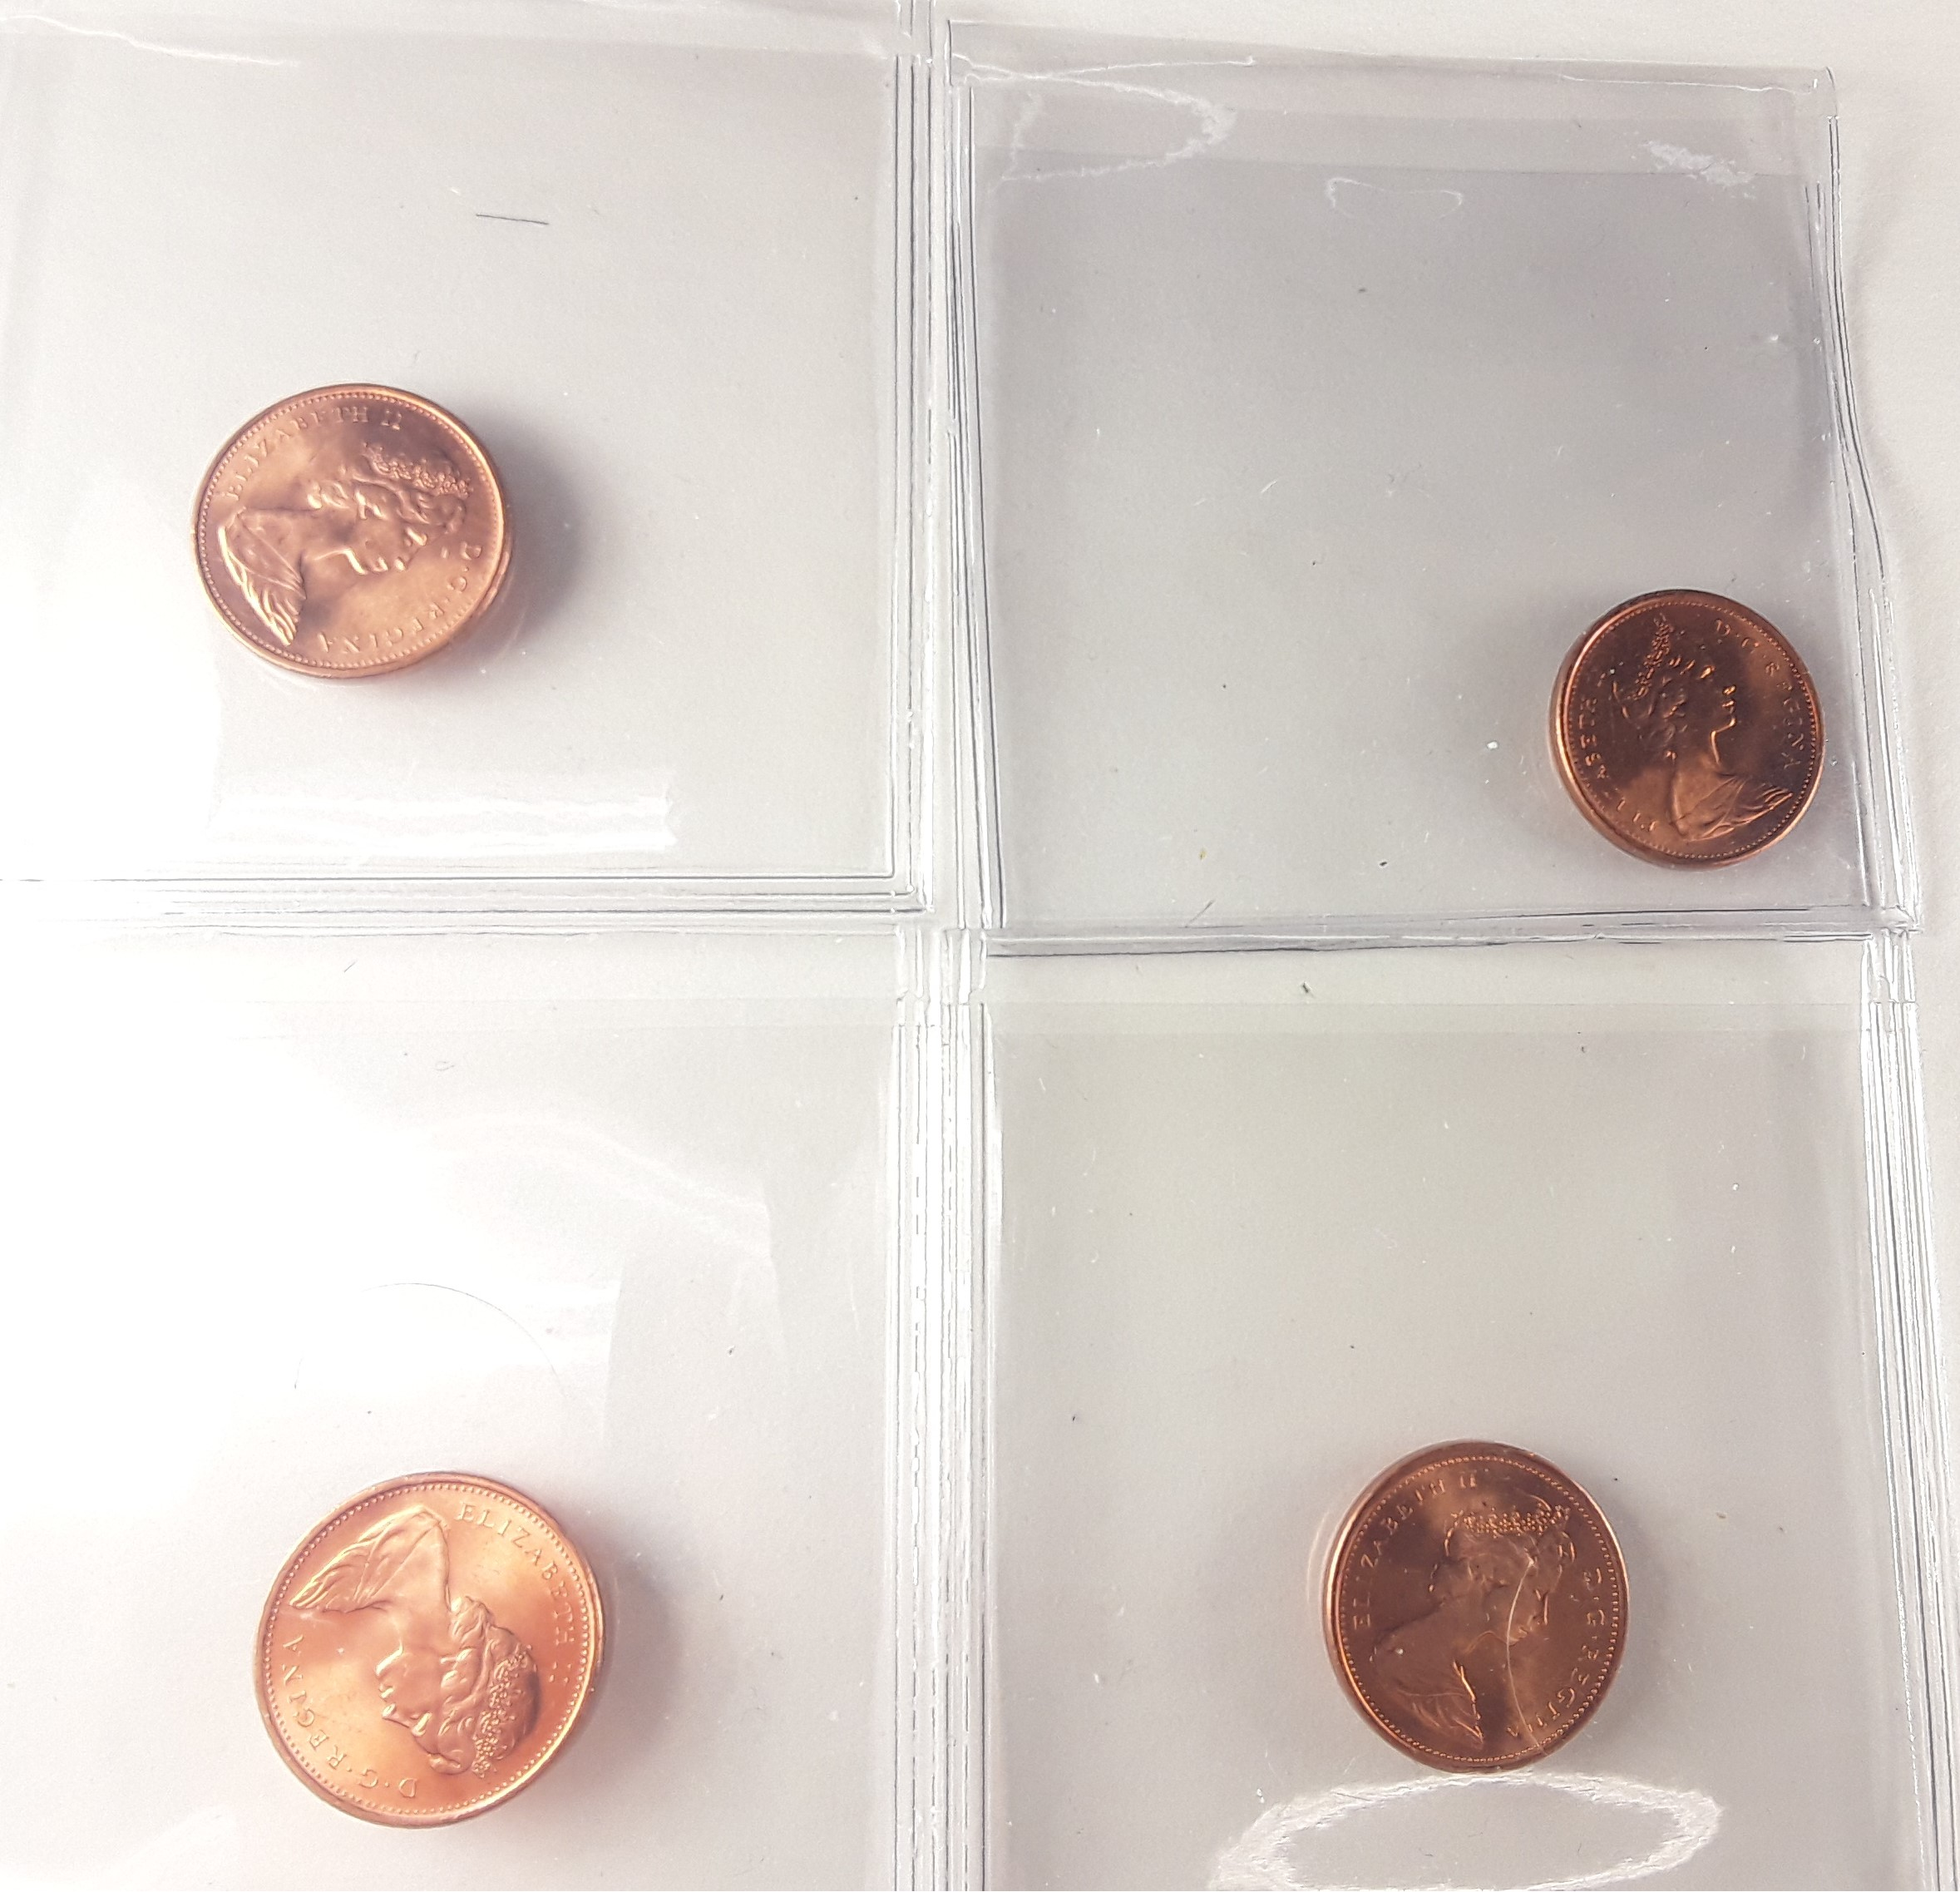 Canada 1983 Canada Uncirculated Coin Collection 6 Coin Set 1 Cent To One Dollar Royal Available In Various Designs And Specifications For Your Selection Coins